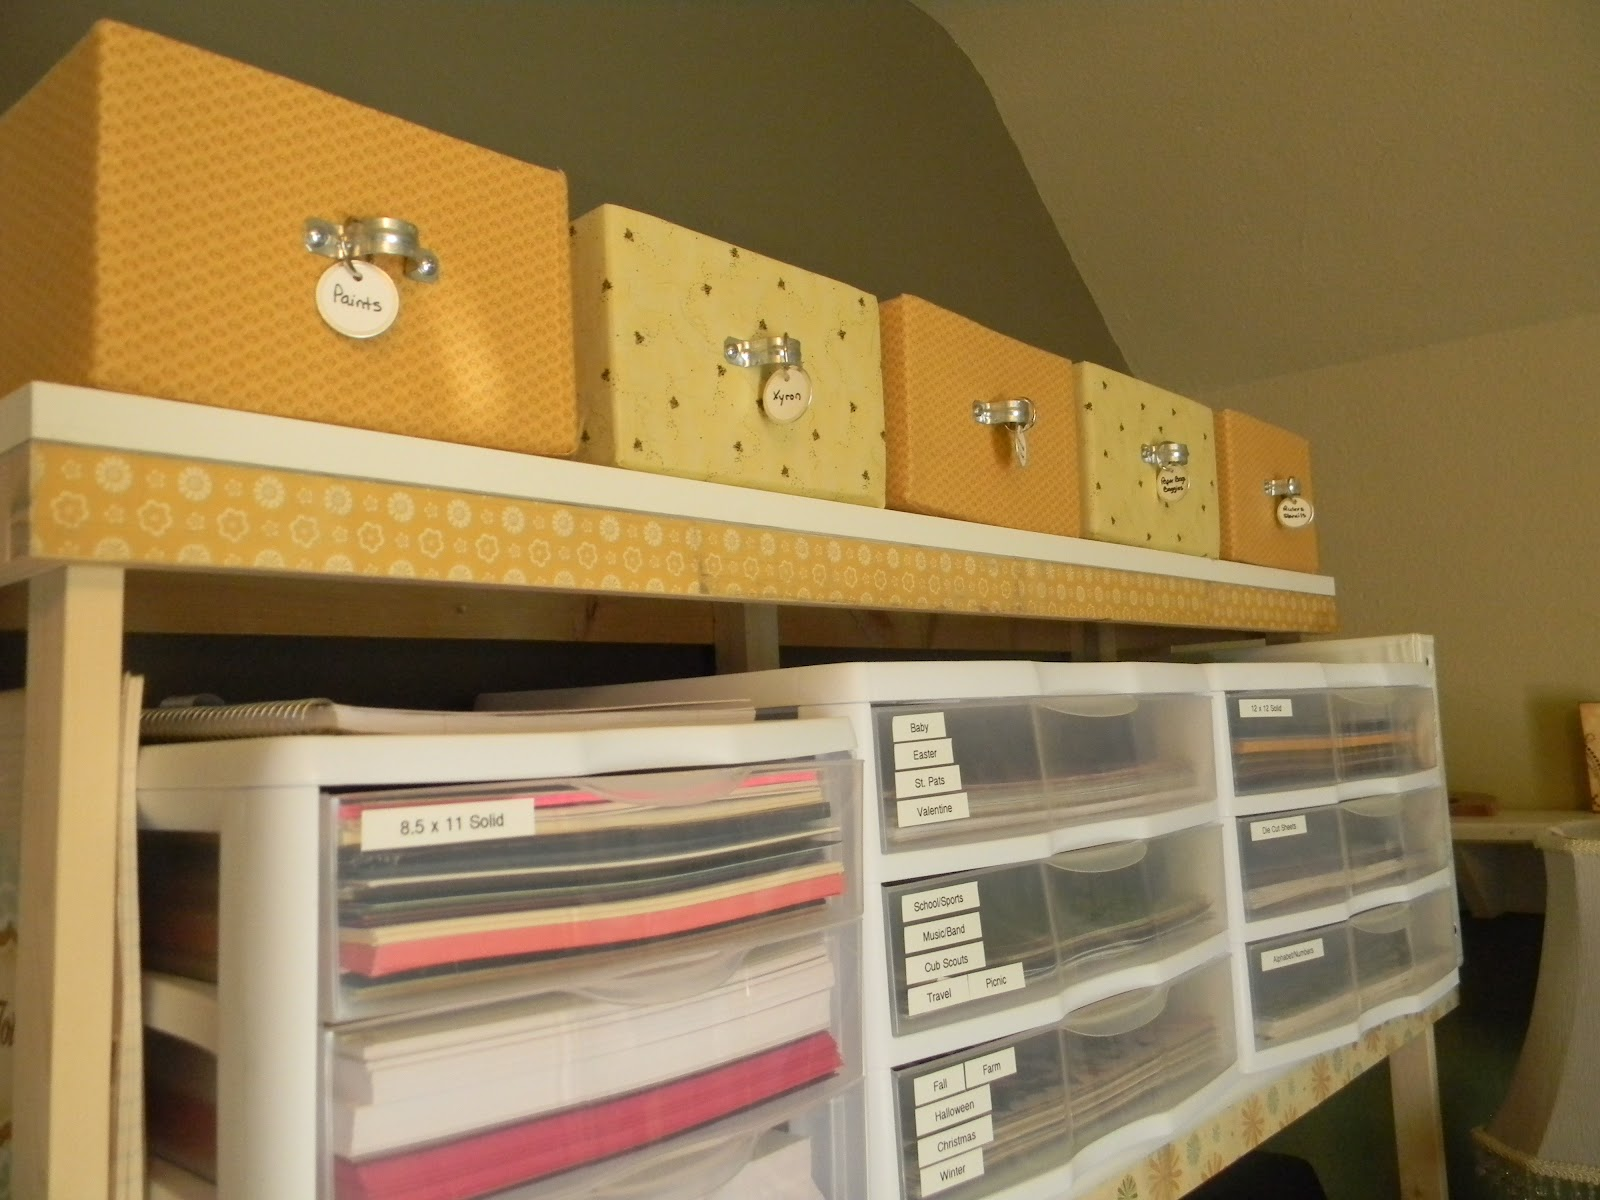 Fabric Covered Storage Boxes! & Everyday Life: Fabric Covered Storage Boxes!